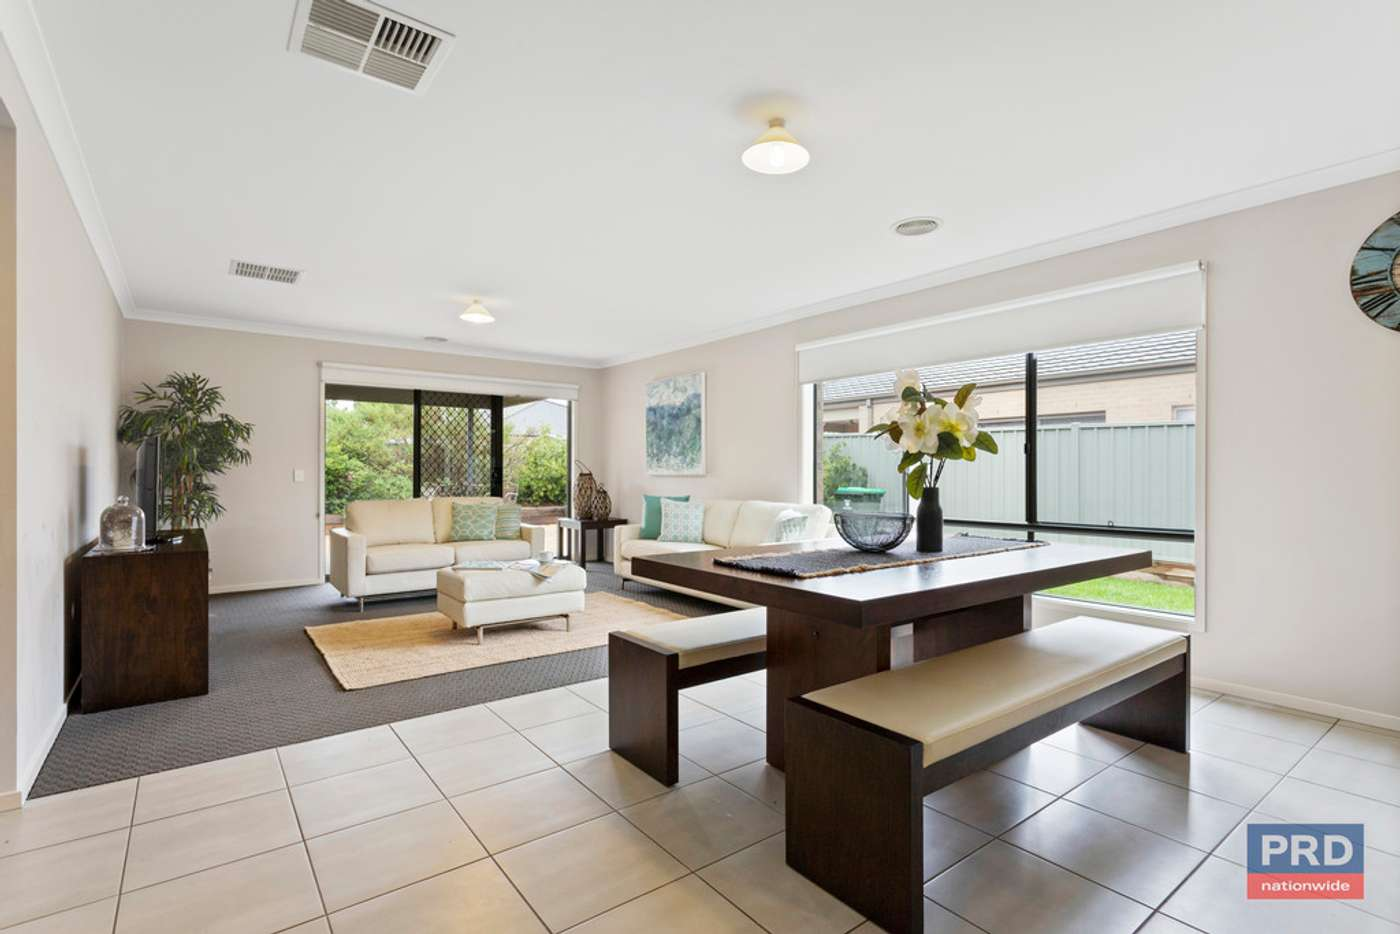 Sixth view of Homely house listing, 44 The Boulevard, White Hills VIC 3550